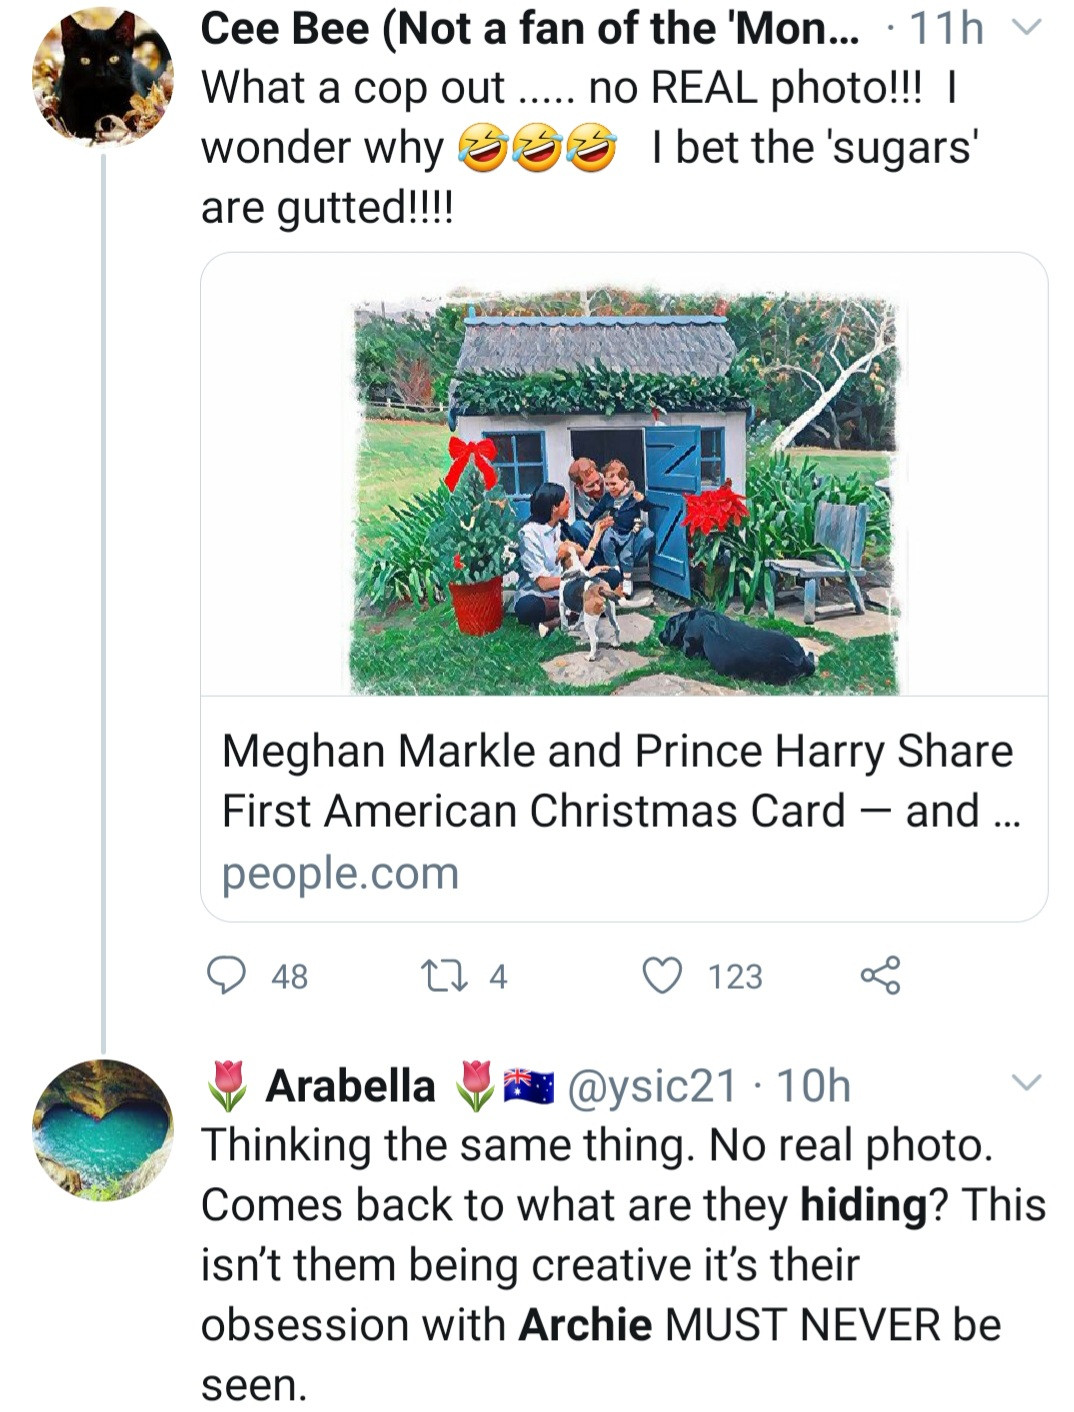 Meghan Markle and Prince Harry accused of